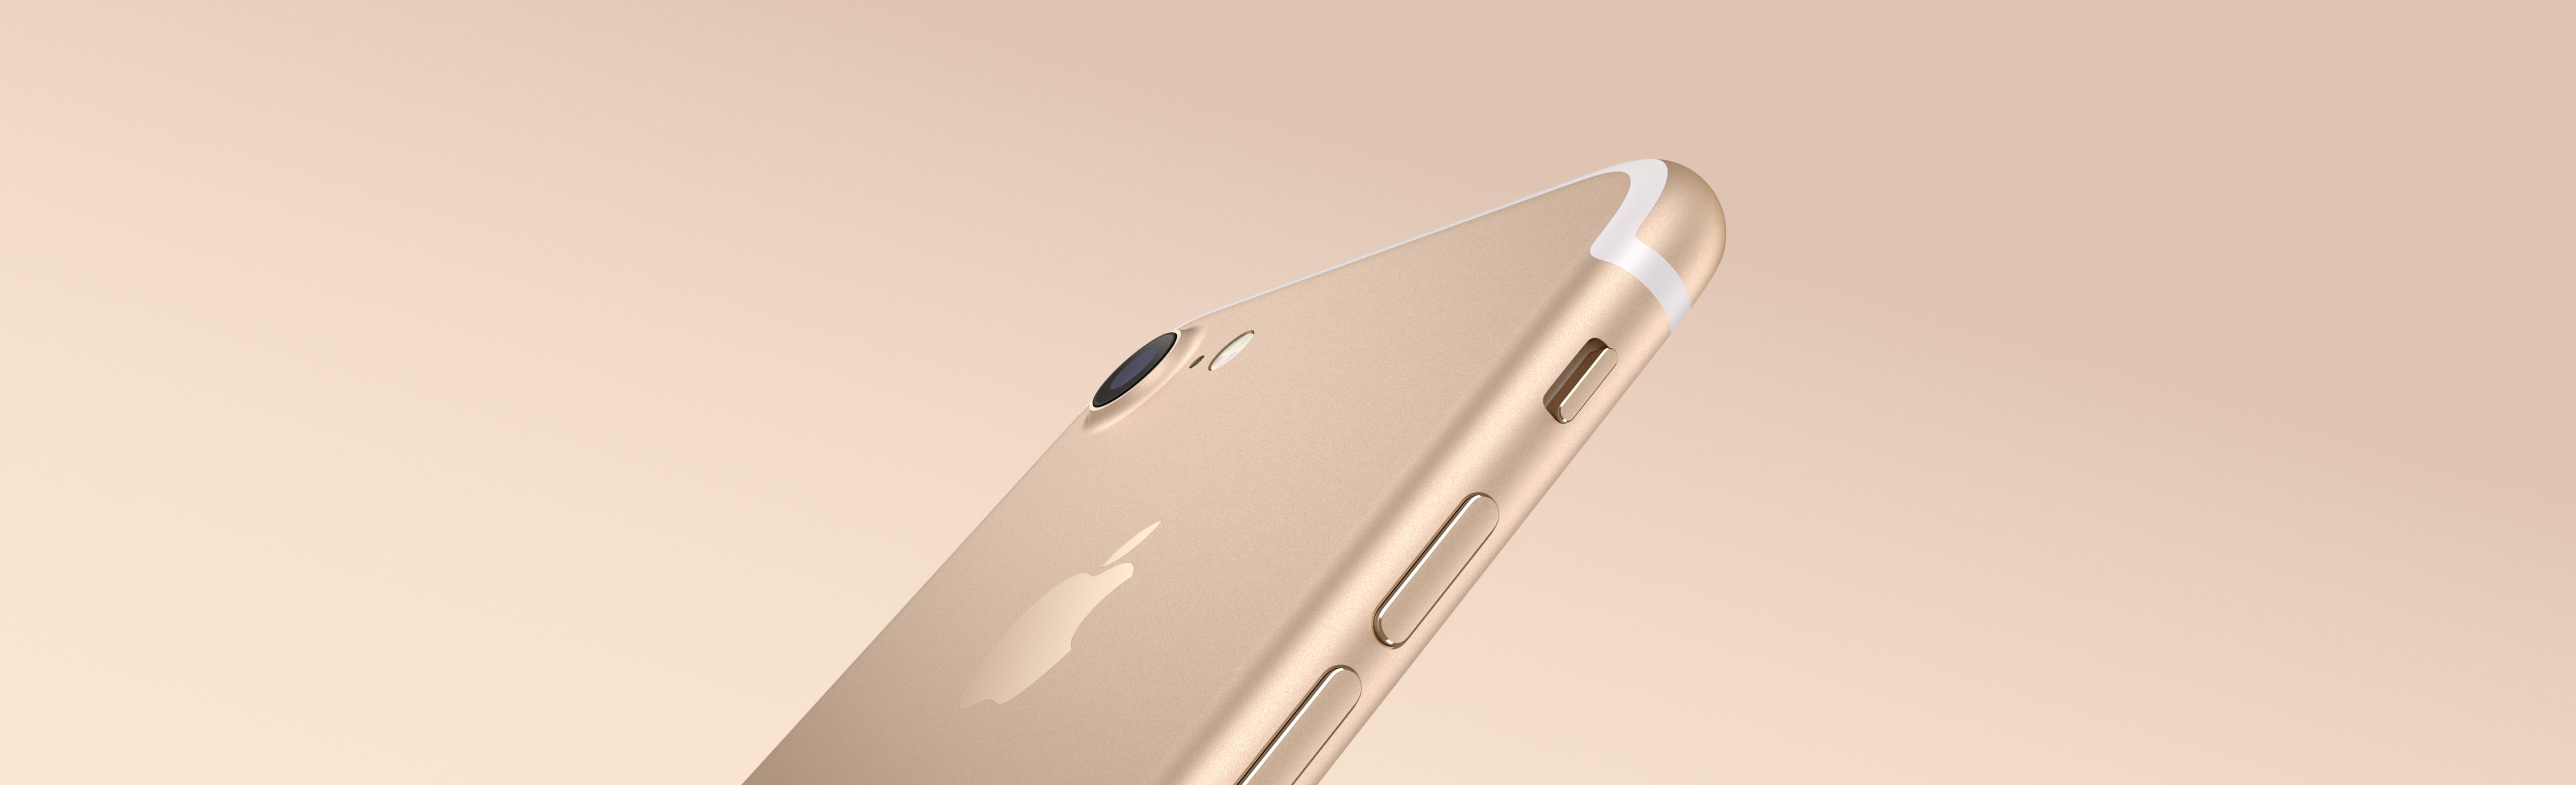 iphone-7-gold-hero